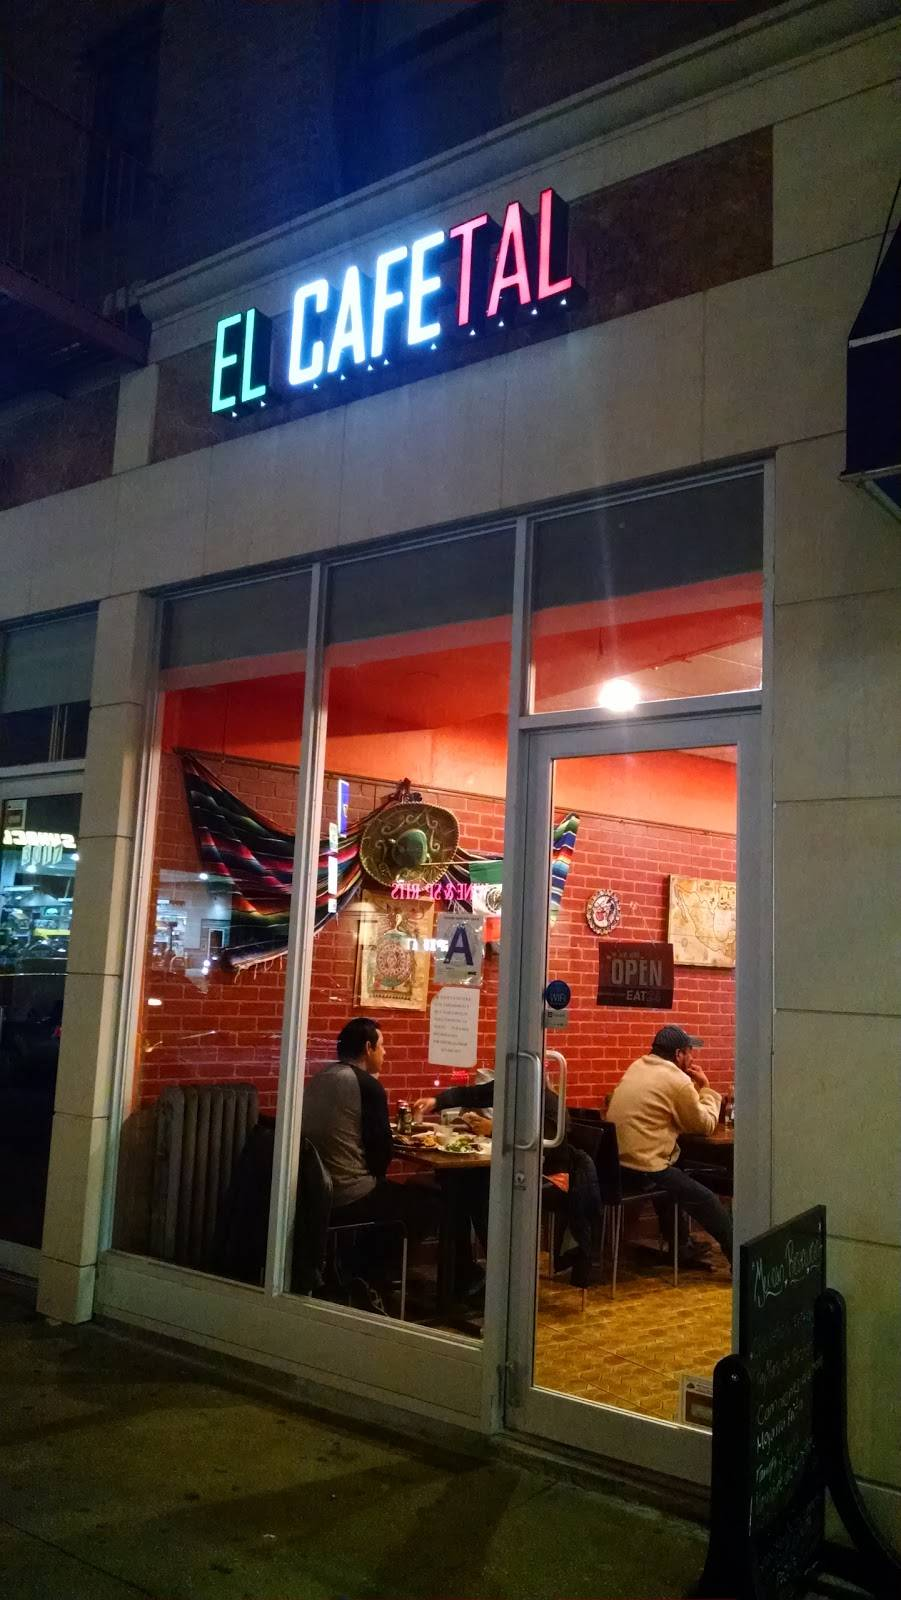 El Cafetal | restaurant | 30-19 Astoria Blvd, Astoria, NY 11102, USA | 7185040790 OR +1 718-504-0790